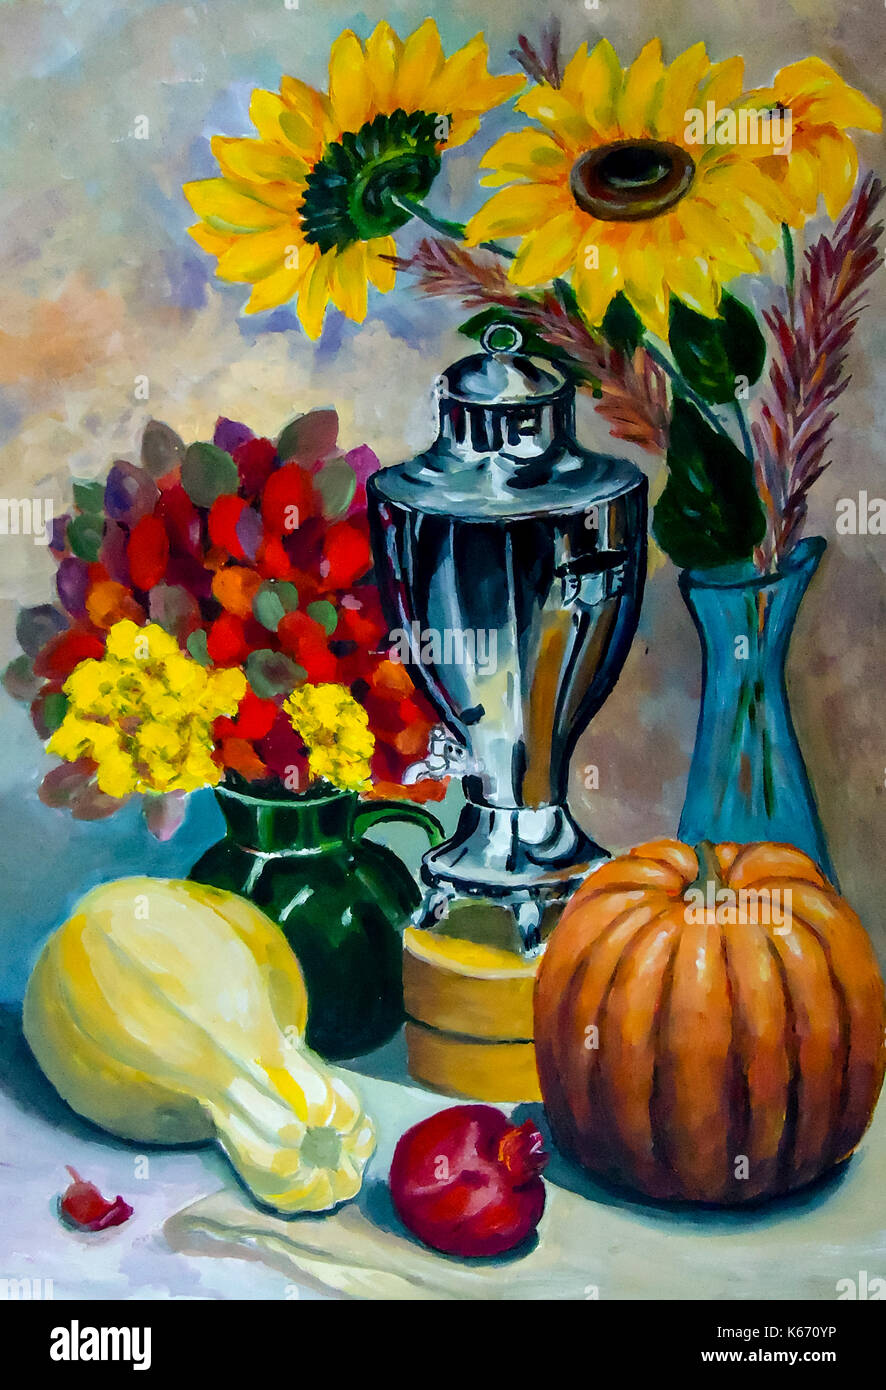 Still life. A painting depicting a still life, a vase, dishes, a bouquet and fruit - Stock Image